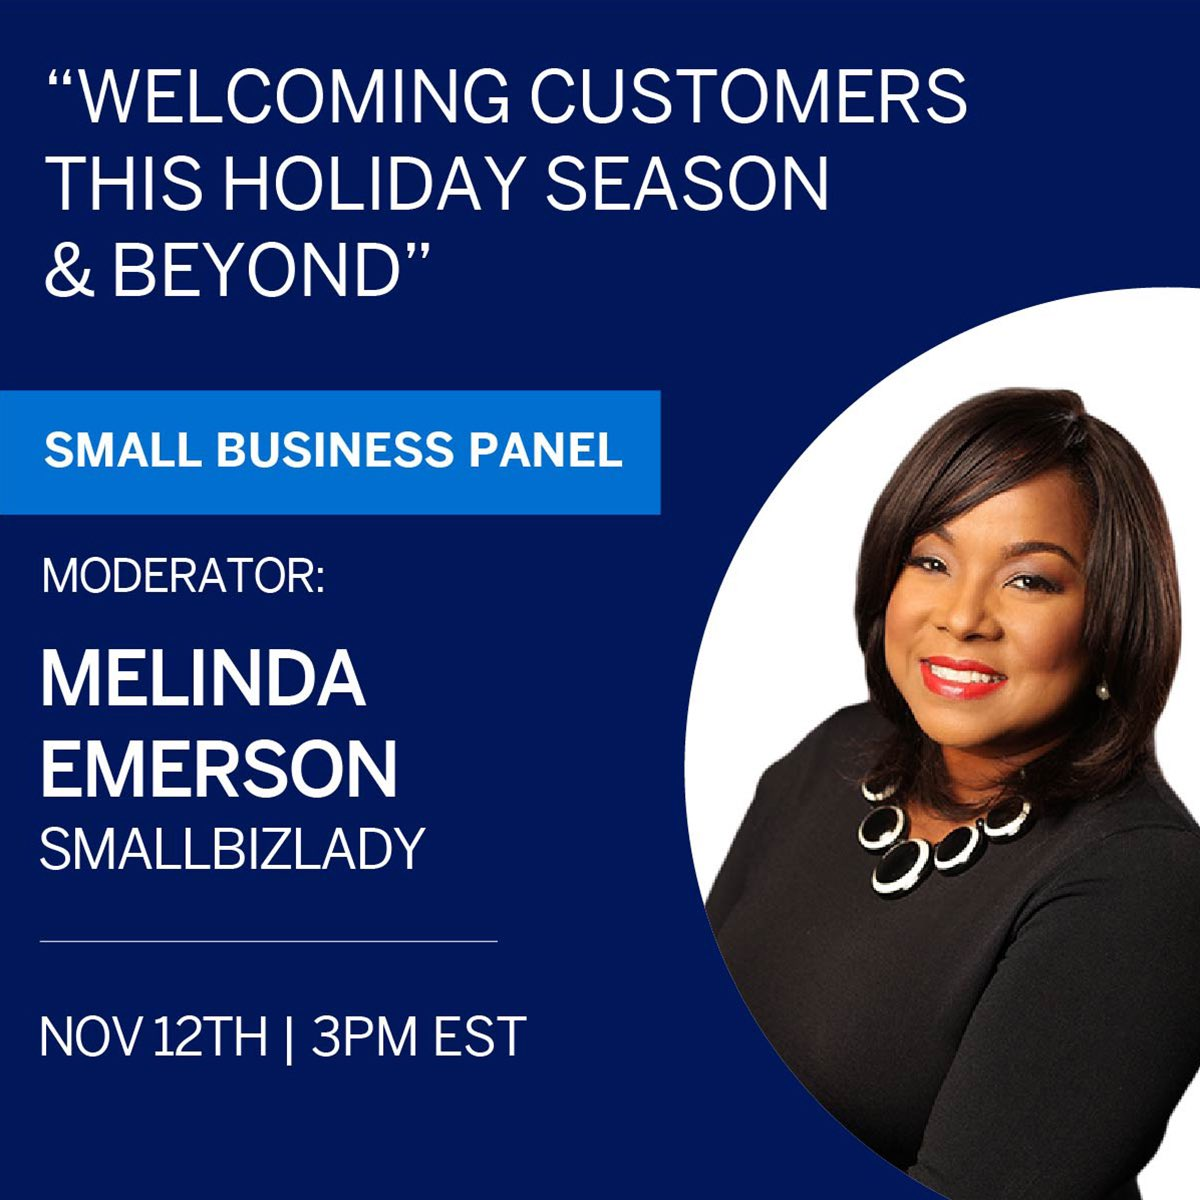 """Set your business up for success with Melinda Emerson, the """"@SmallBizLady!"""" Join her live on Nov. 12 as she chats with small business owners who are pivoting their holiday shopping season plans during COVID. Register today:"""